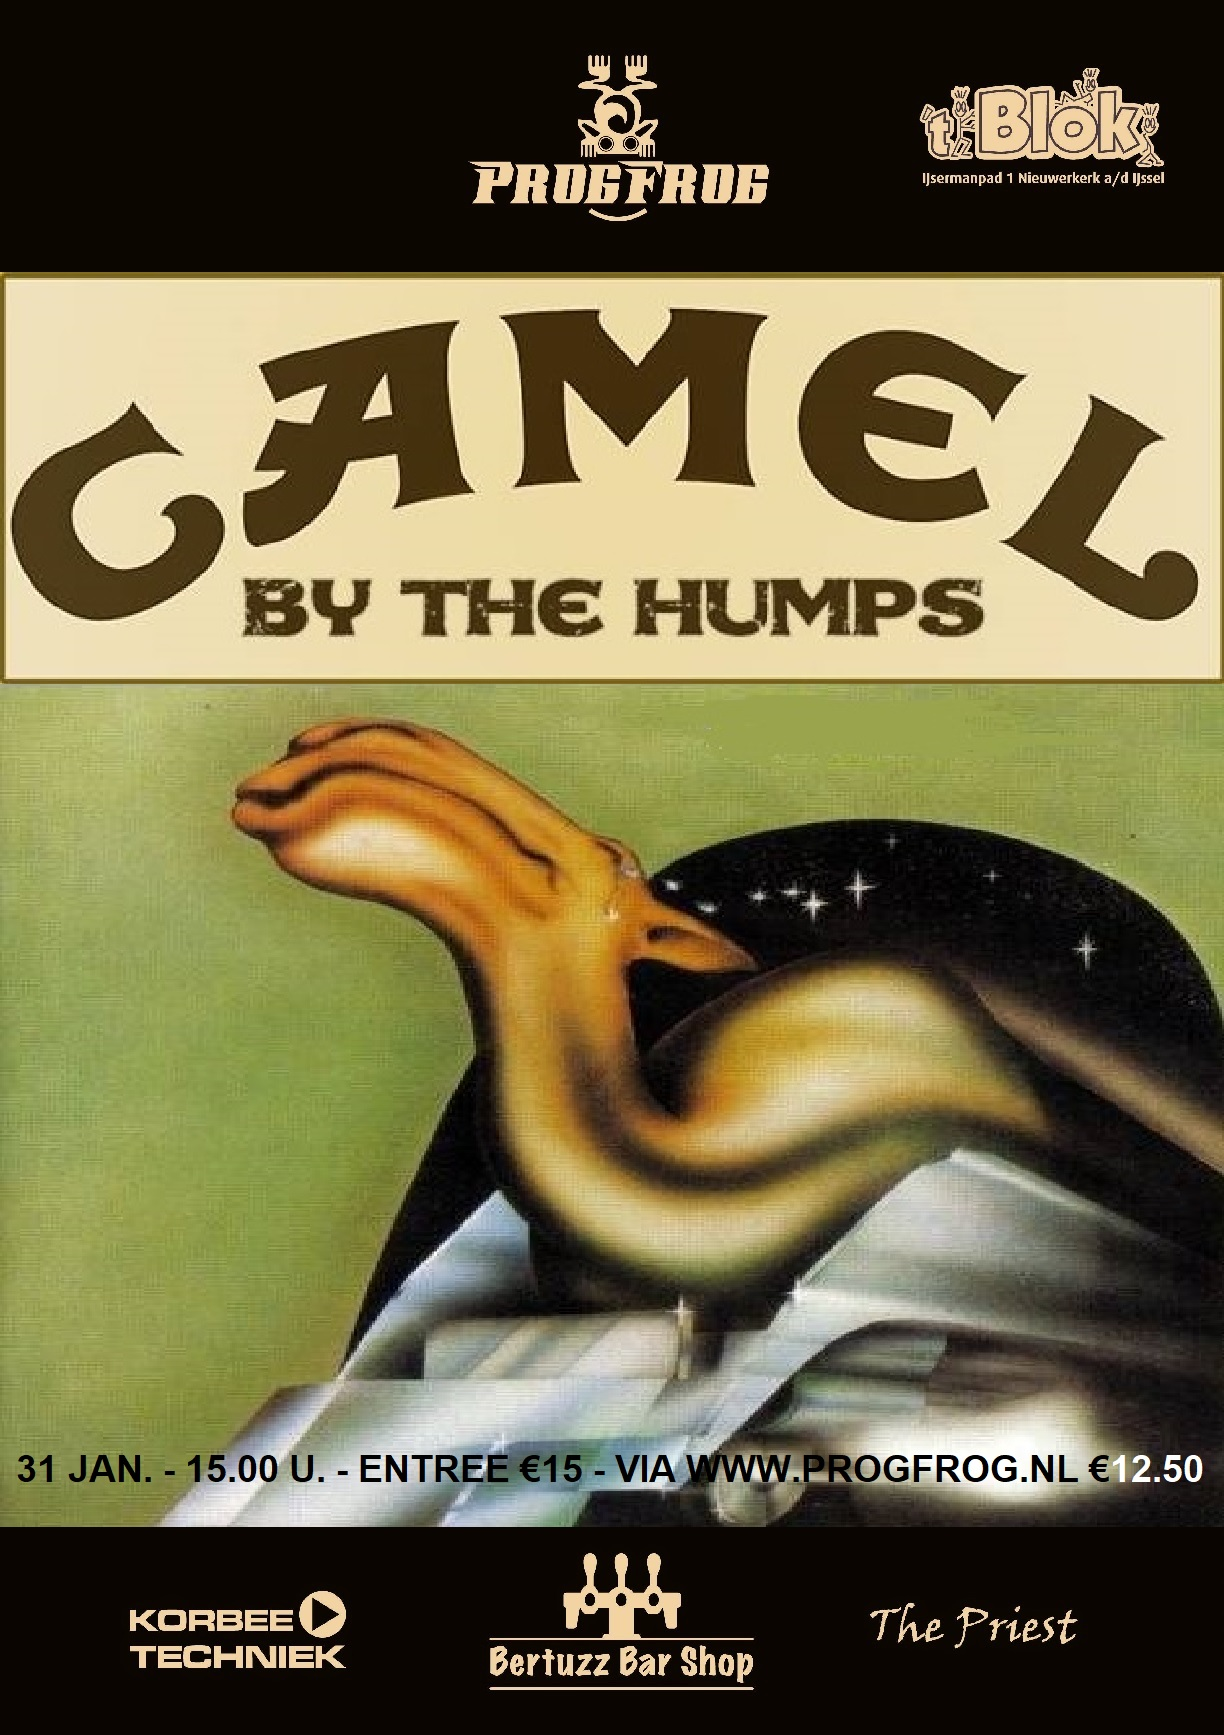 The Humps - Camel Tribute (Israel)